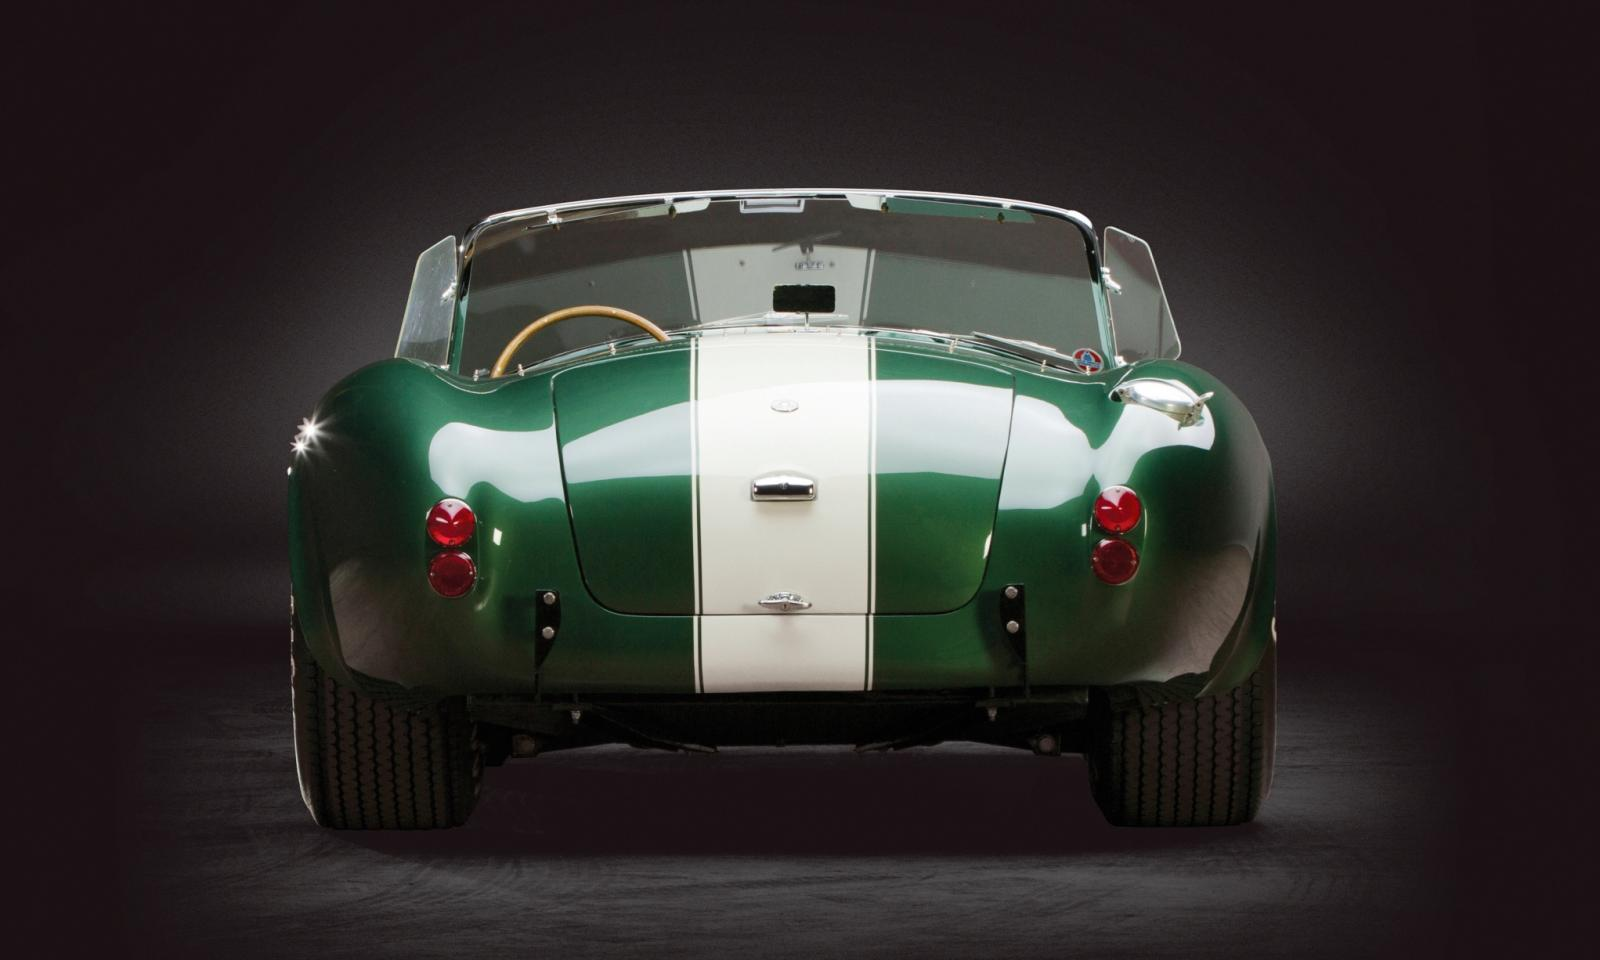 Rm Dallas Preview - ORIGINAL 1967 Shelby 427 Cobra Estimated at $1MM+ 10